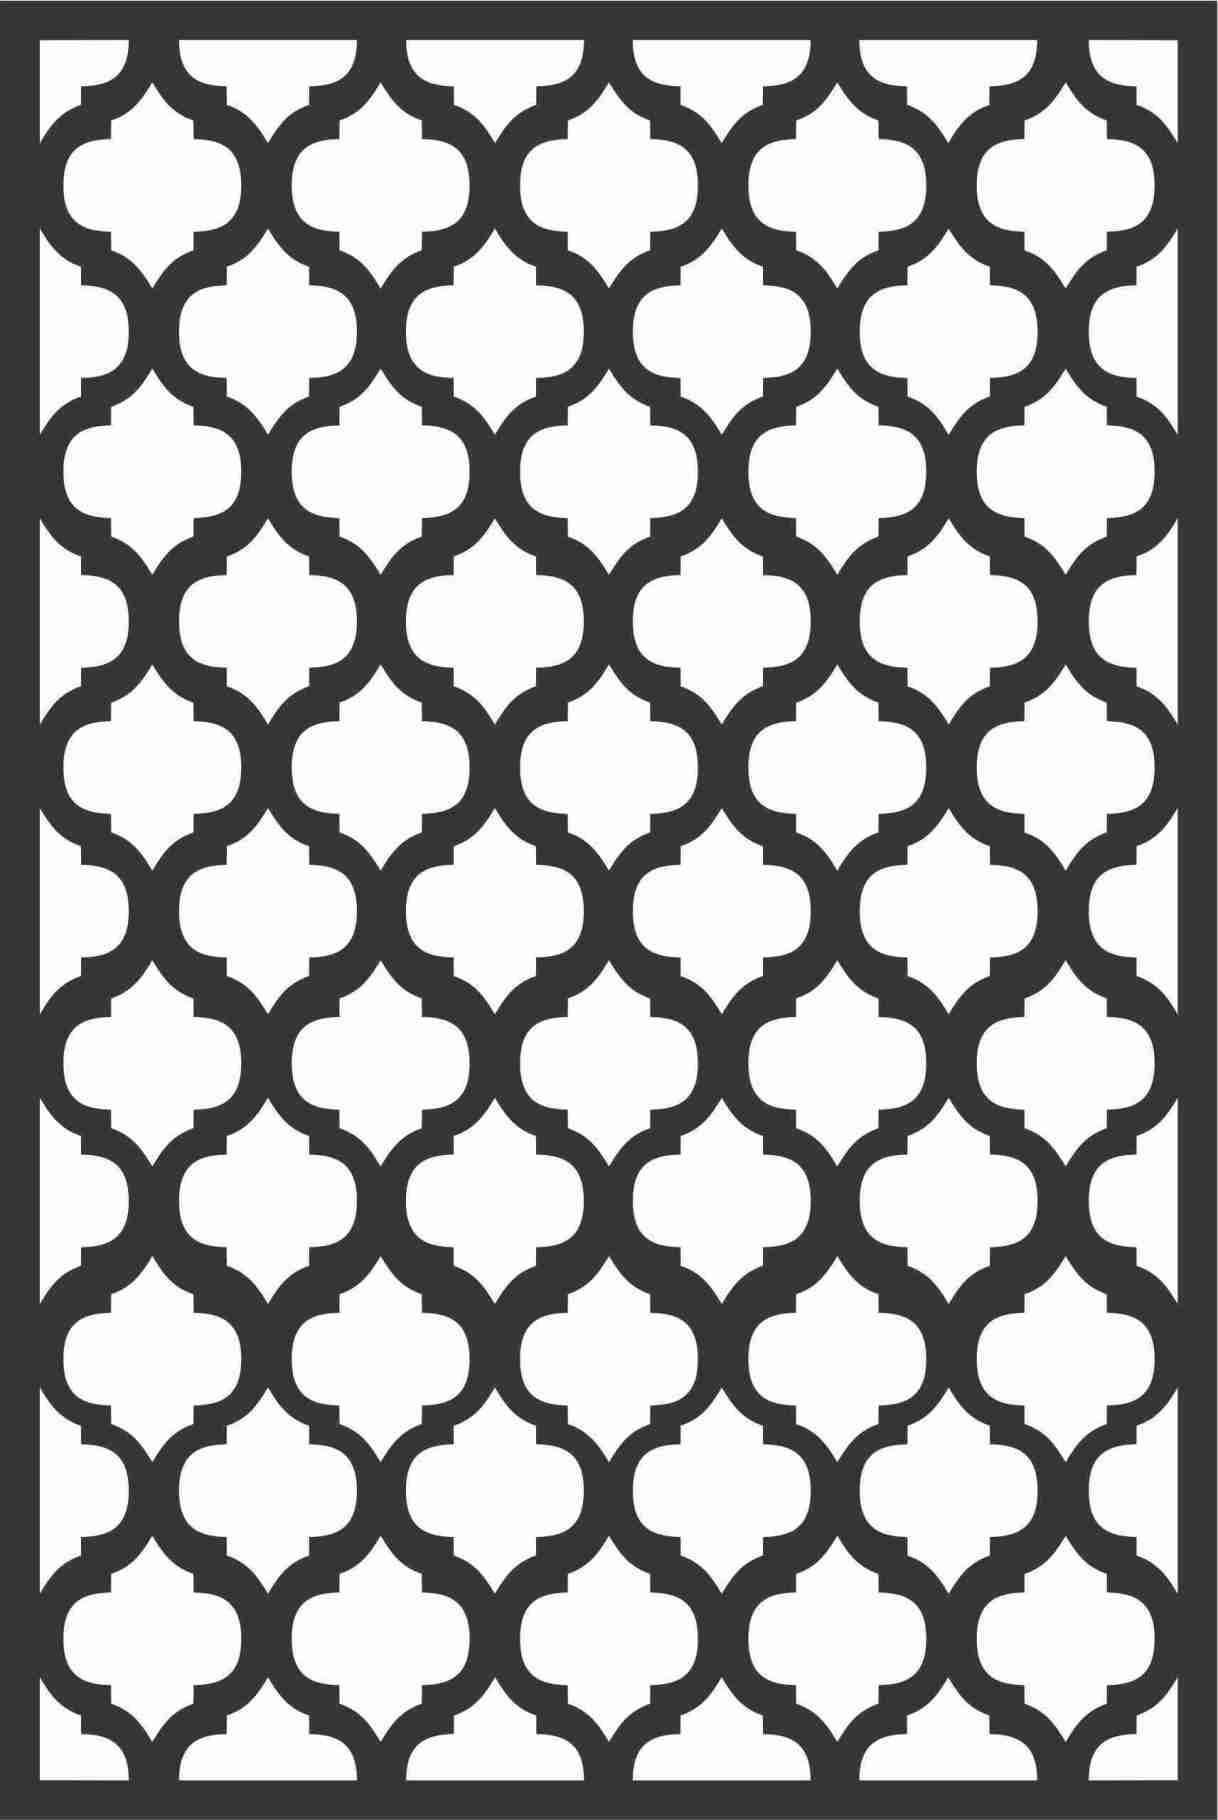 Decorative Screen Patterns For Laser Cutting 166 Free DXF File